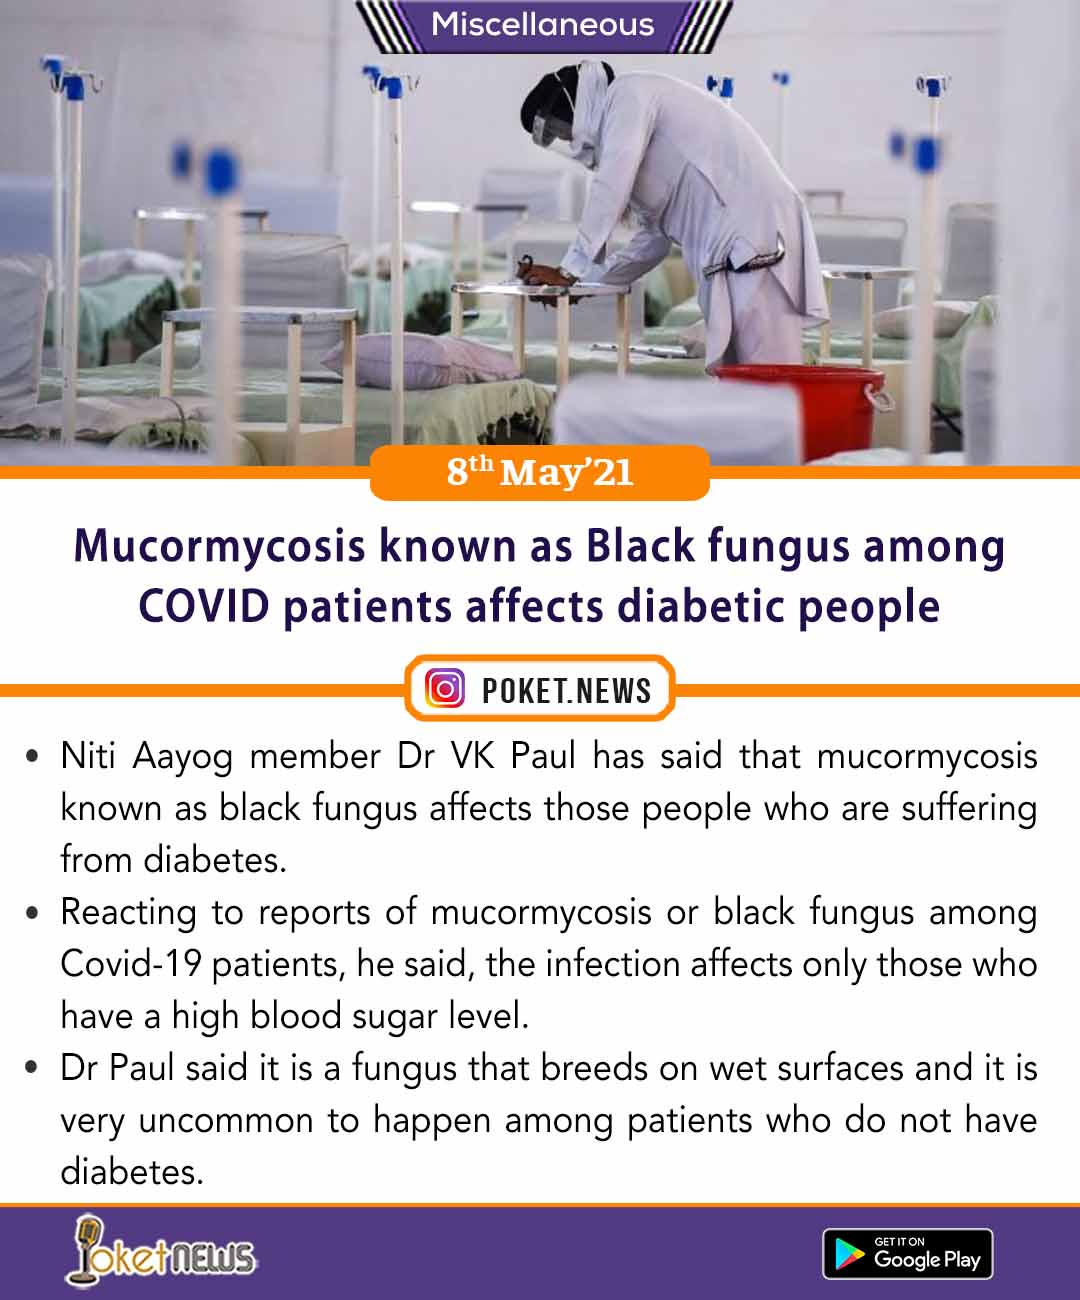 Mucormycosis known as Black fungus among COVID patients affects diabetic people